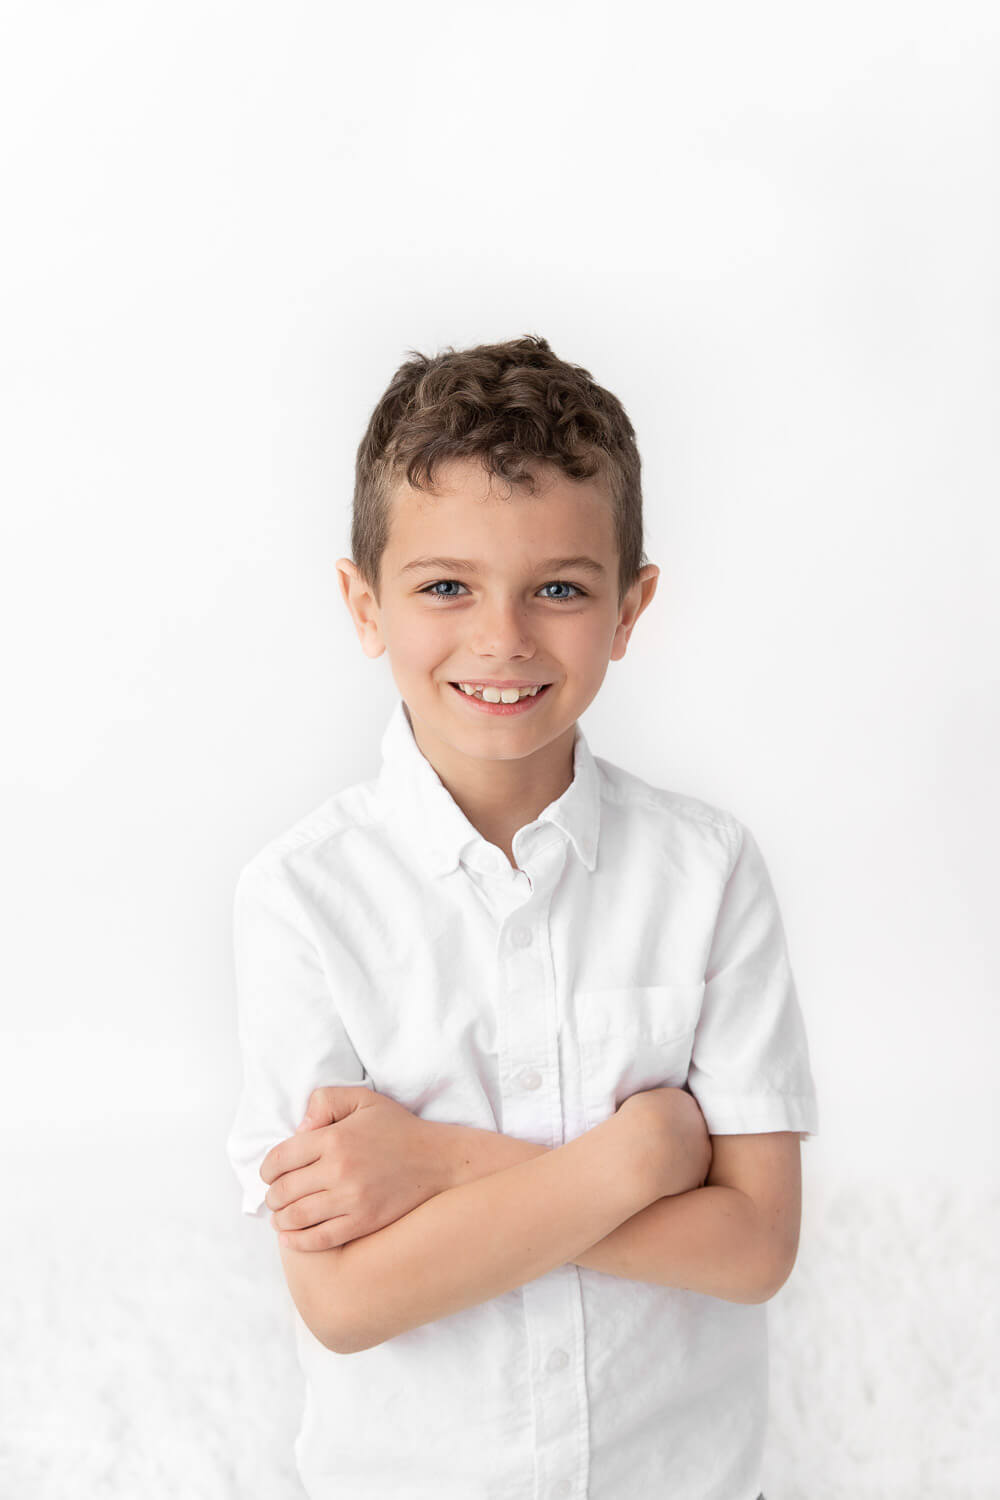 boy wearing white shirt with crossed arms smiling at camera in front of a white backdrop